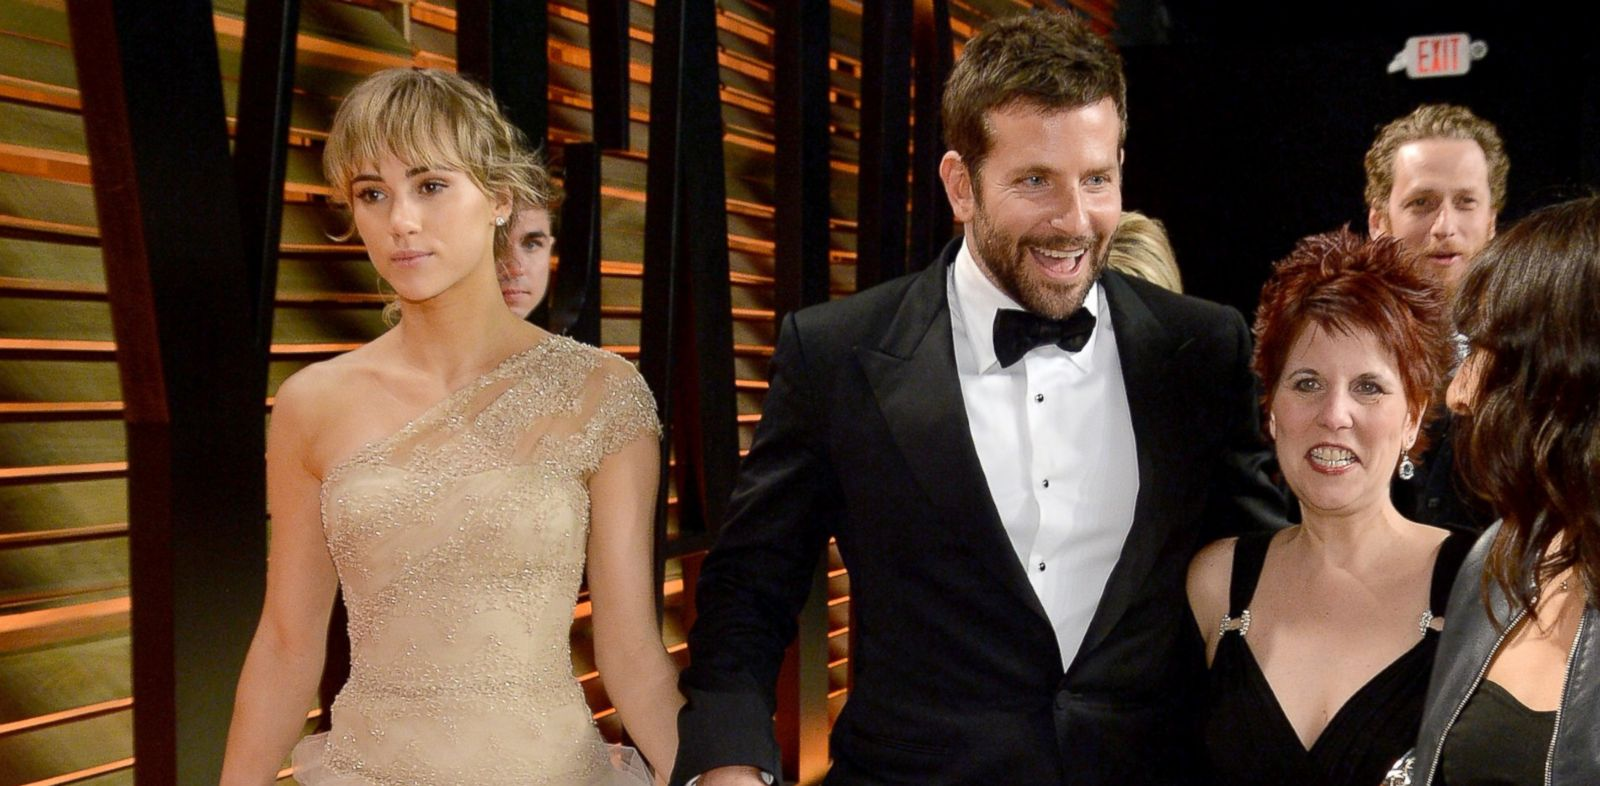 PHOTO: Model Suki Waterhouse, left, and actor Bradley Cooper, center, attend the 2014 Vanity Fair Oscar Party in West Hollywood, Calif. on March 2, 2014.